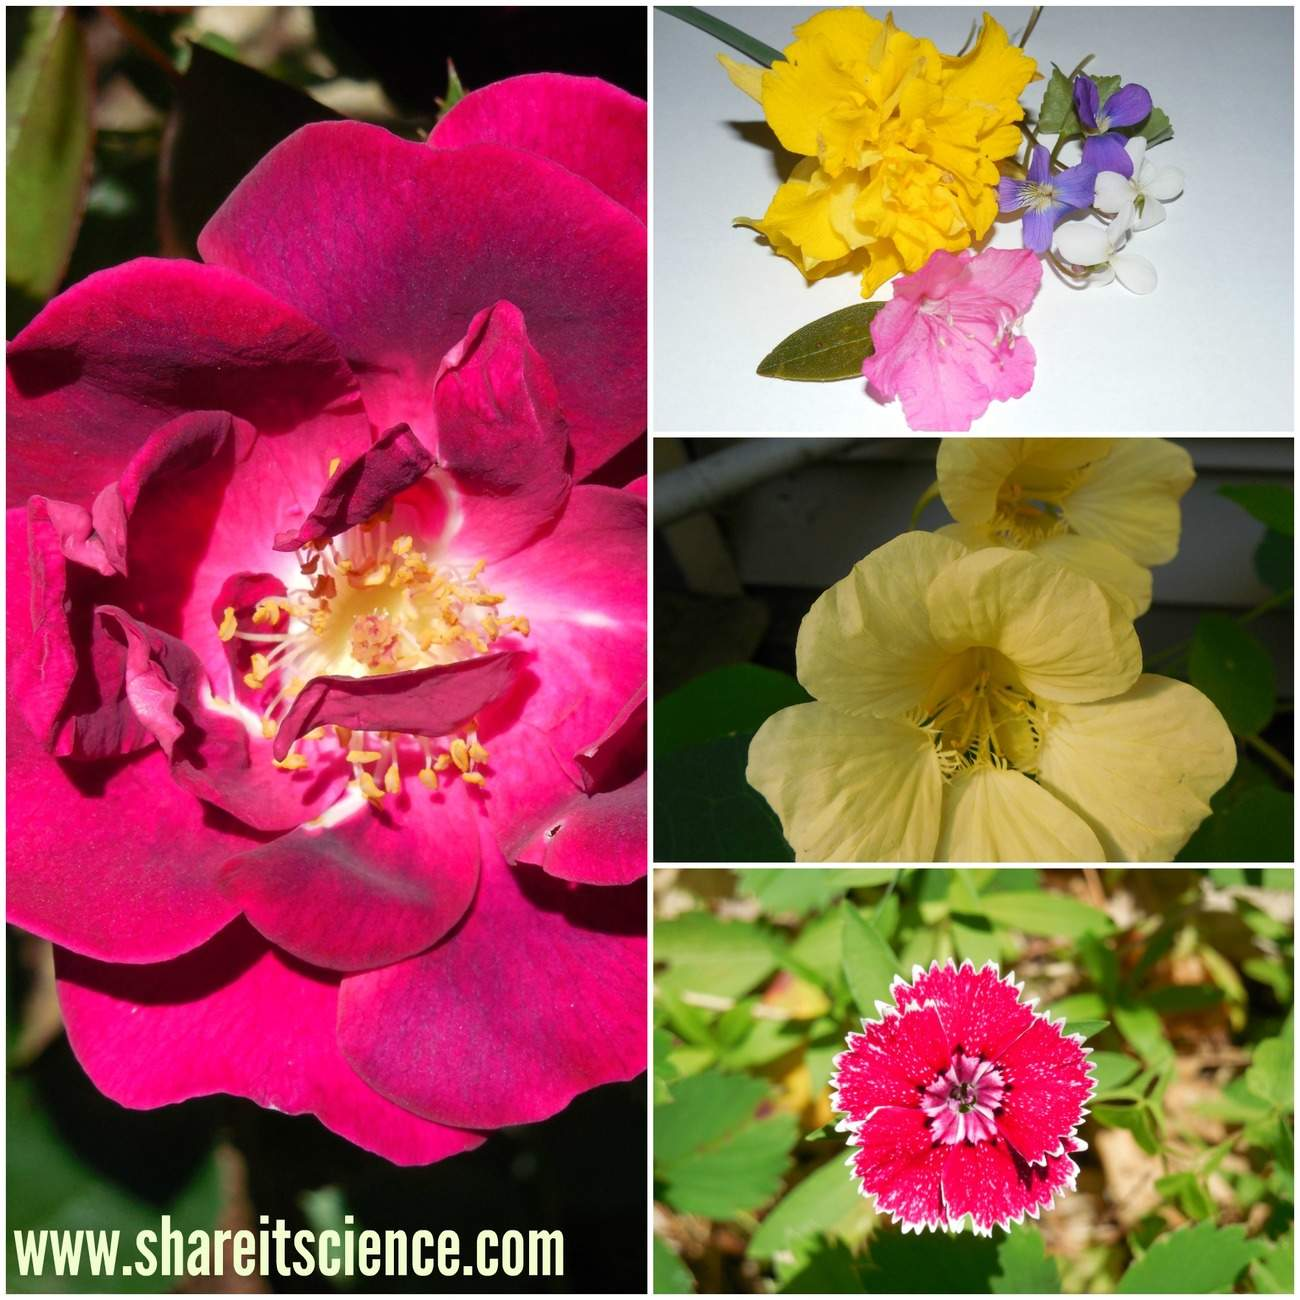 shareitscience_diversity-in-flowers (1)